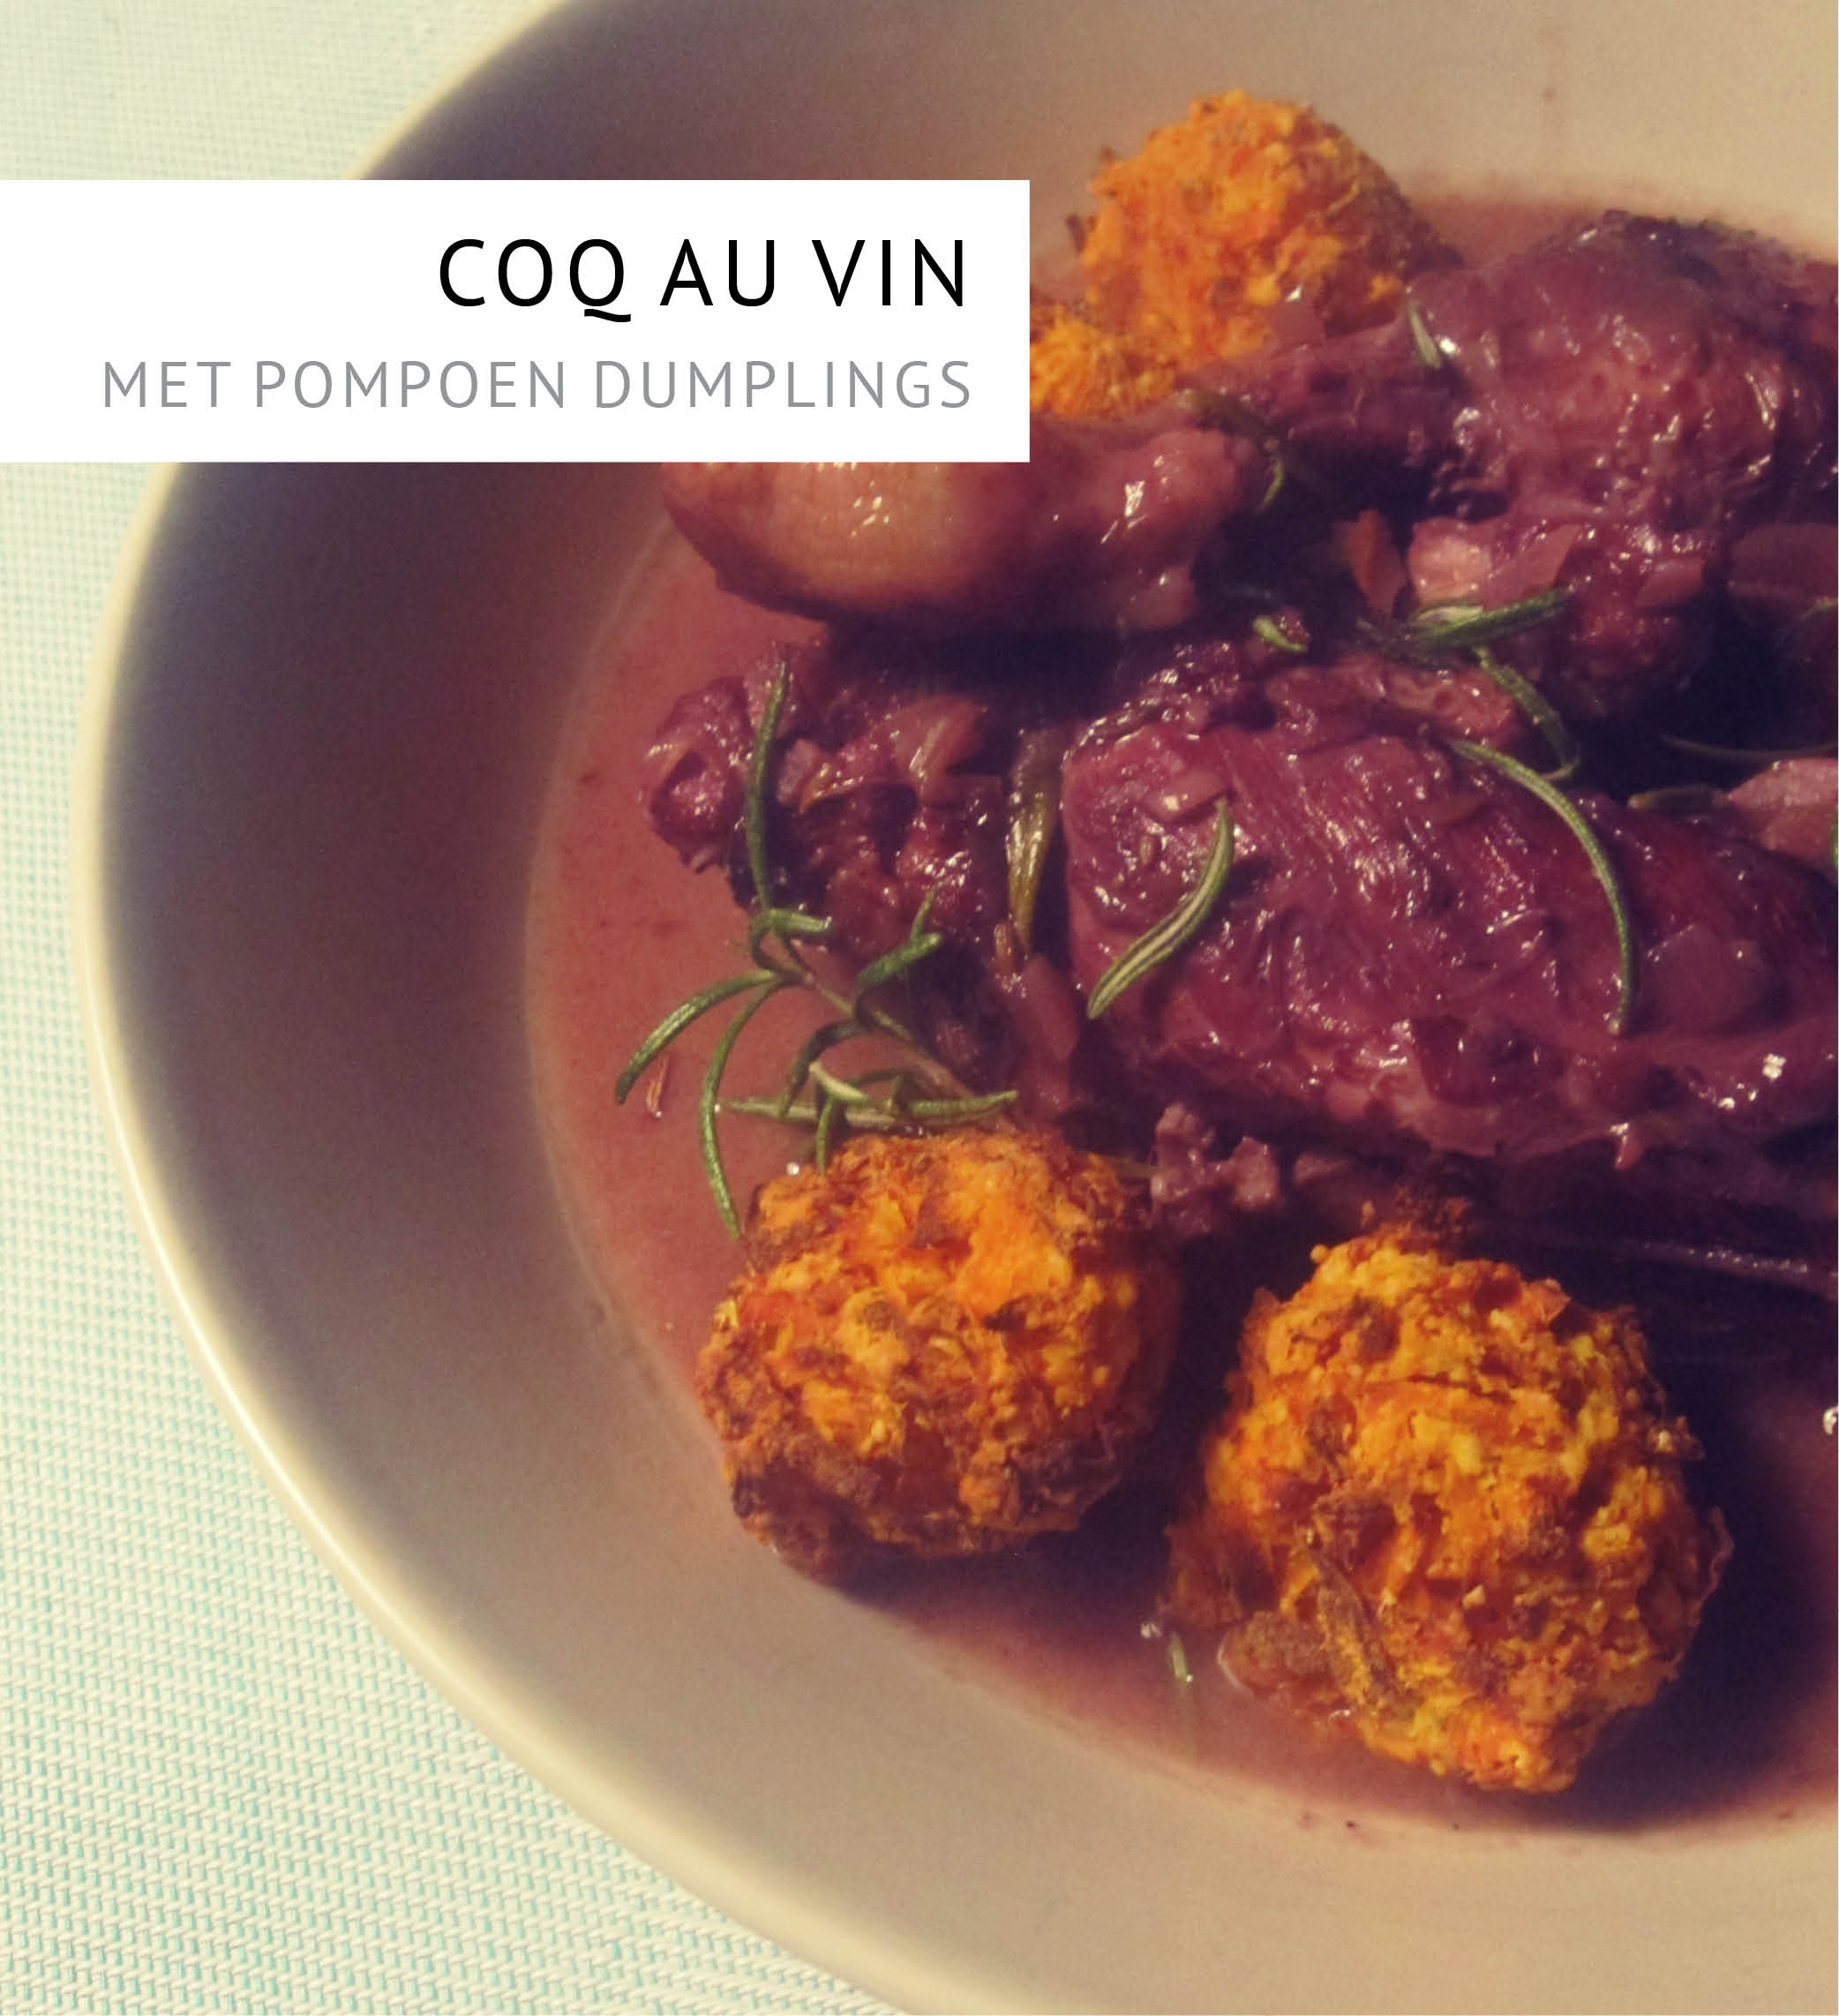 Empty the Fridge - Coq au vin met pompoen dumplings